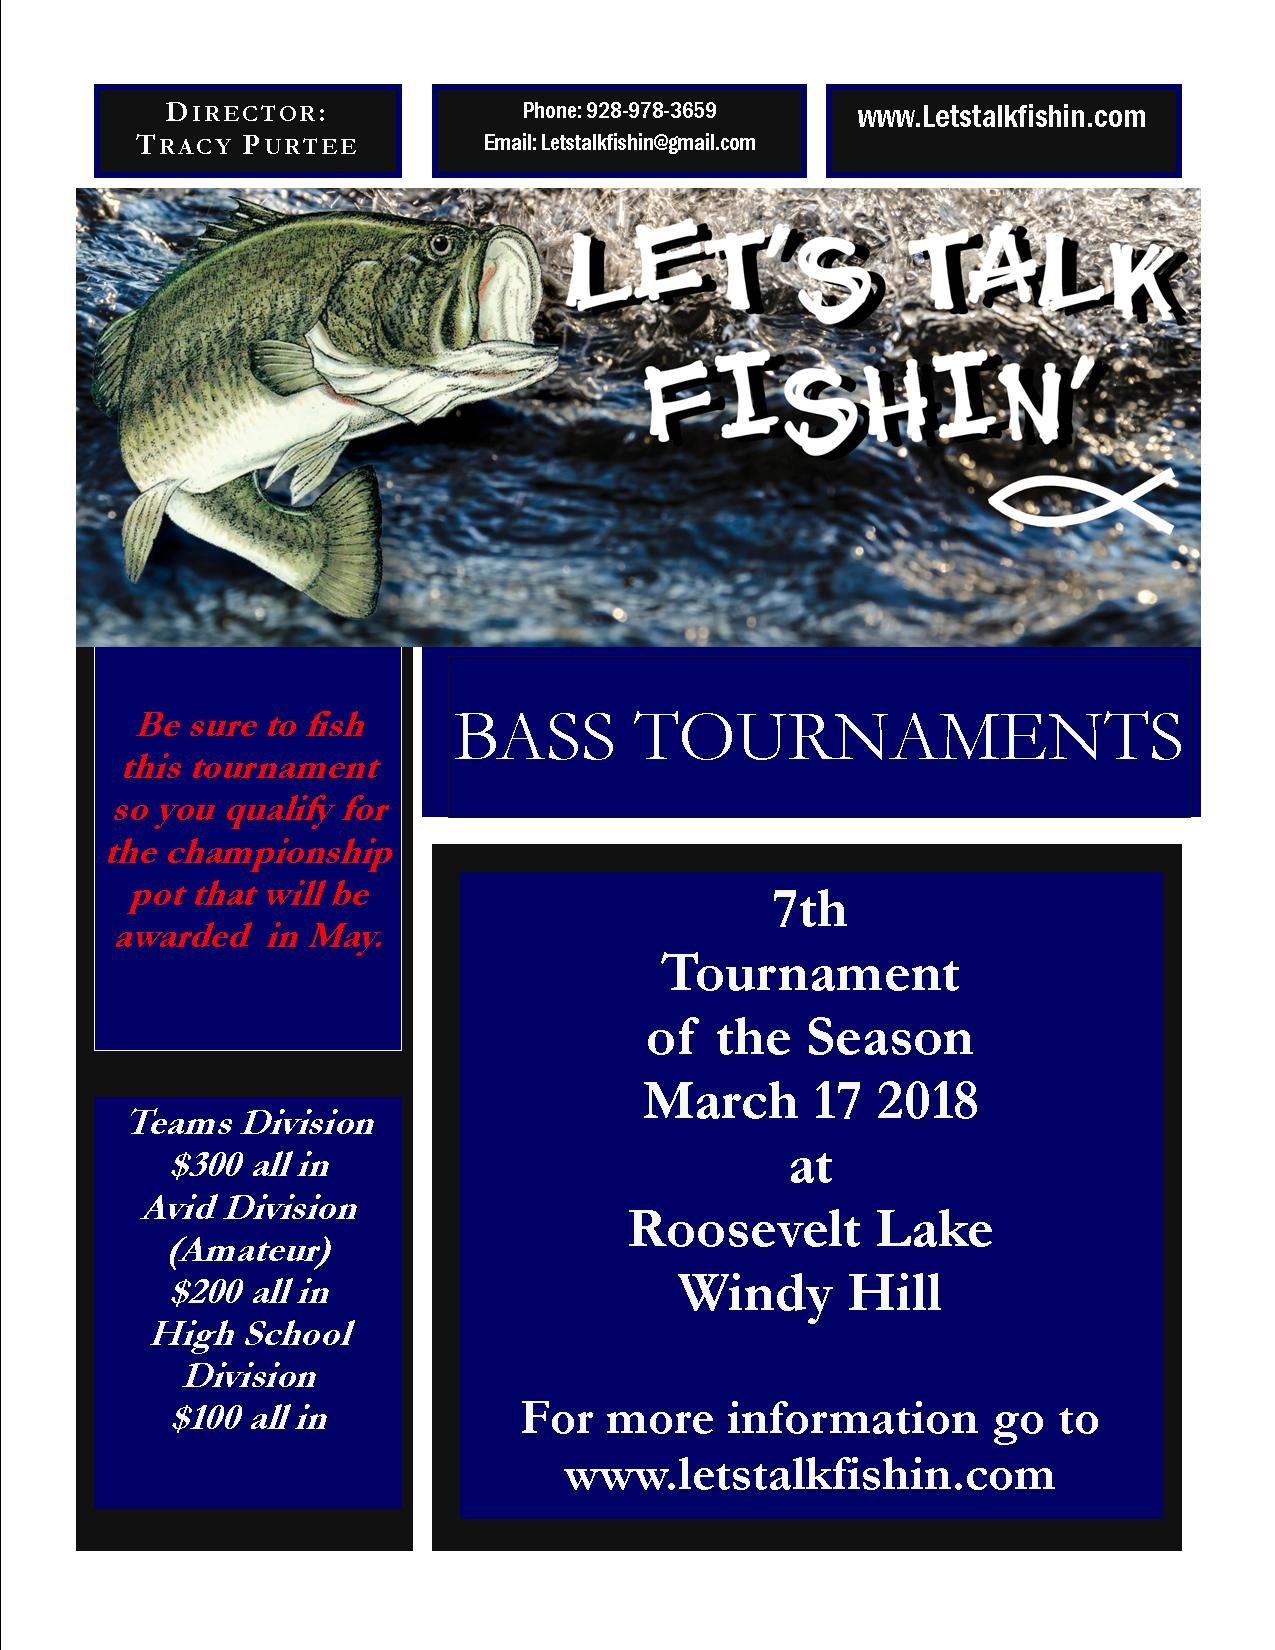 Click image for larger version  Name:7th Tournament.jpg Views:1691 Size:283.6 KB ID:96826